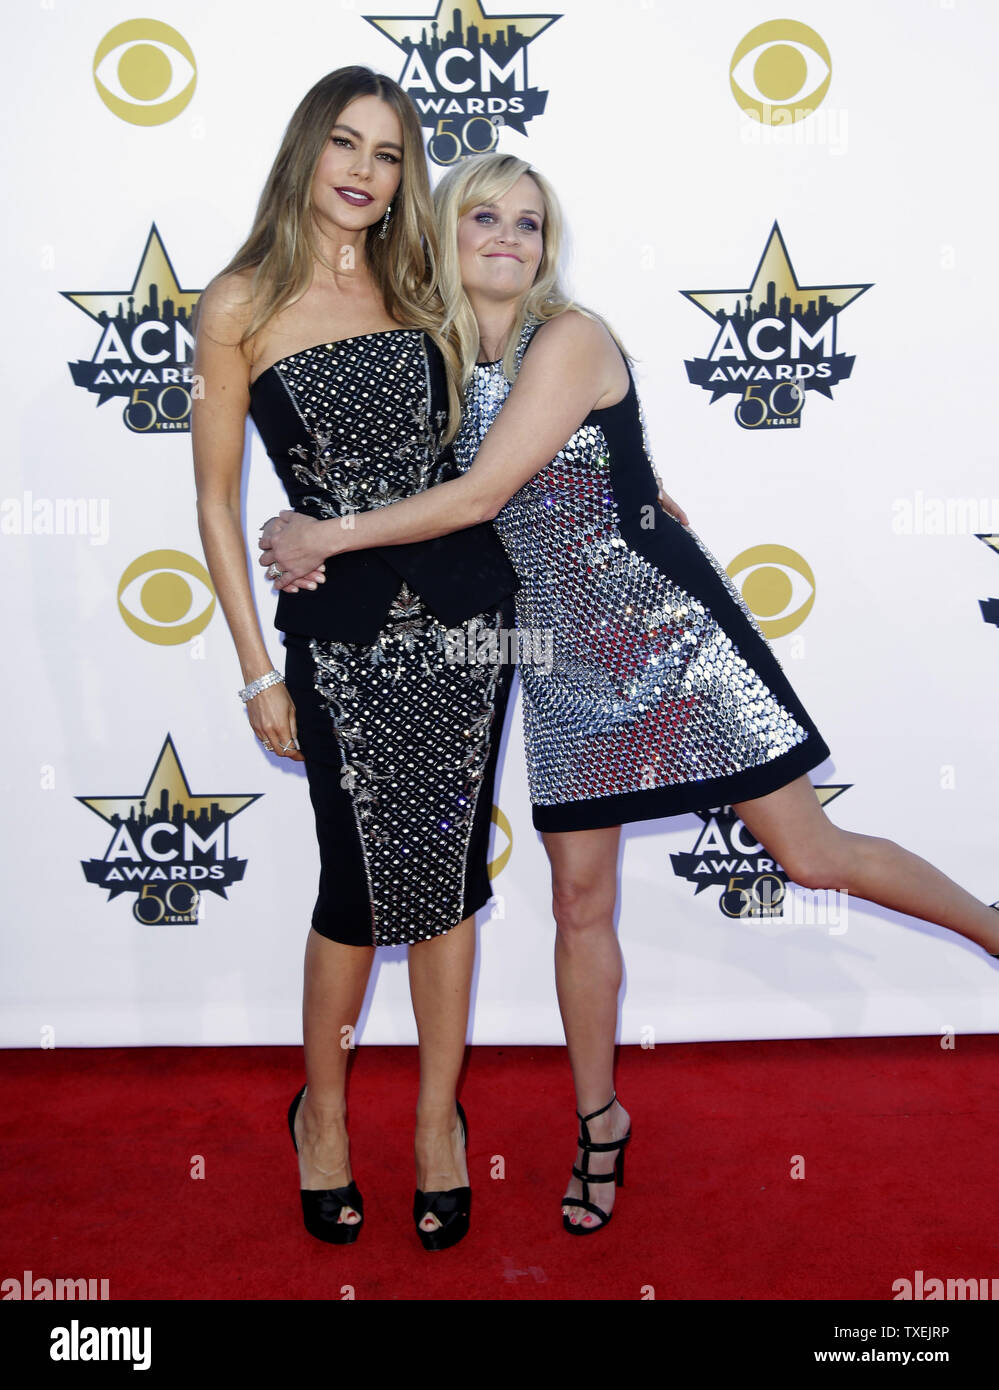 Actresses Sofia Vergara, left, and Reese Witherspoon arrive at the 50th annual Academy of Country Music Awards held at AT&T Stadium in Arlington, Texas on April 19, 2015. Photo by John Angelillo/UPI Stock Photo